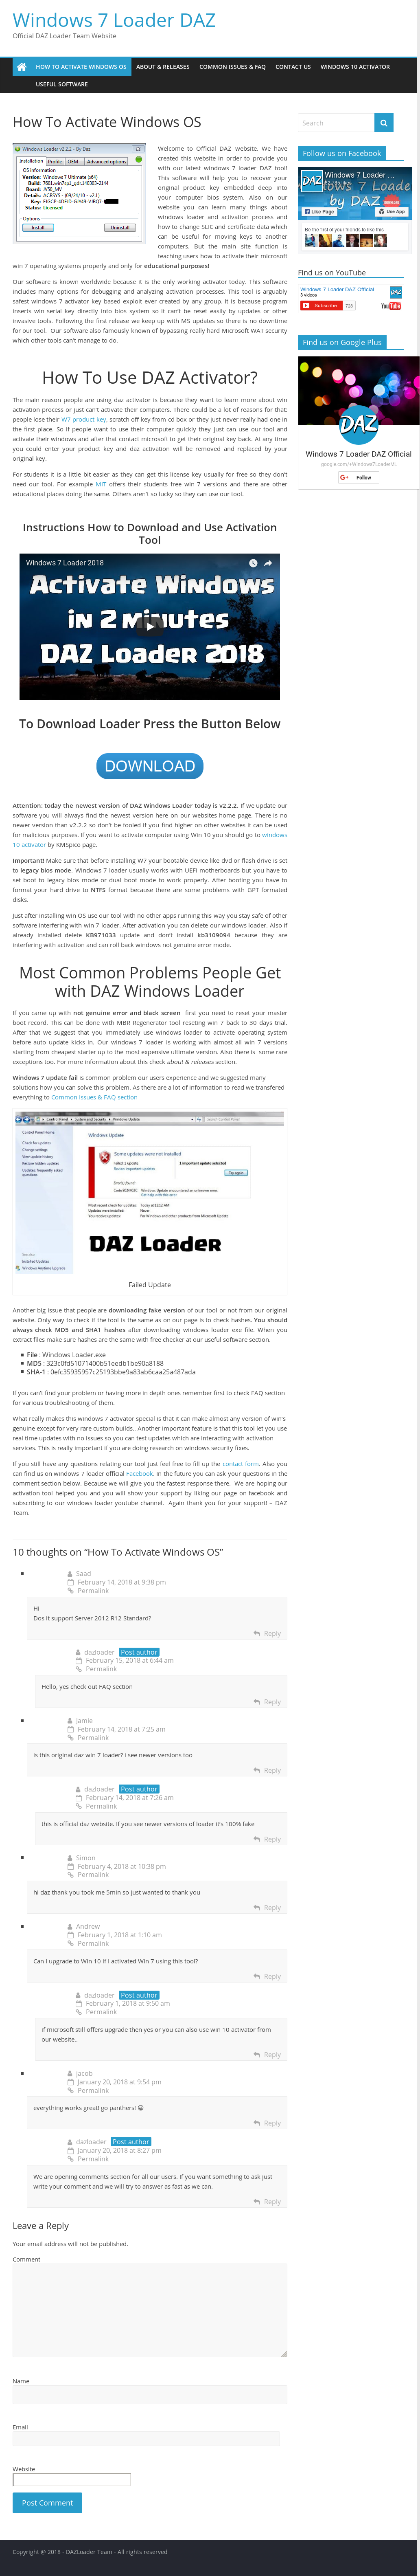 Windows 7 Loader By Daz Competitors, Revenue and Employees